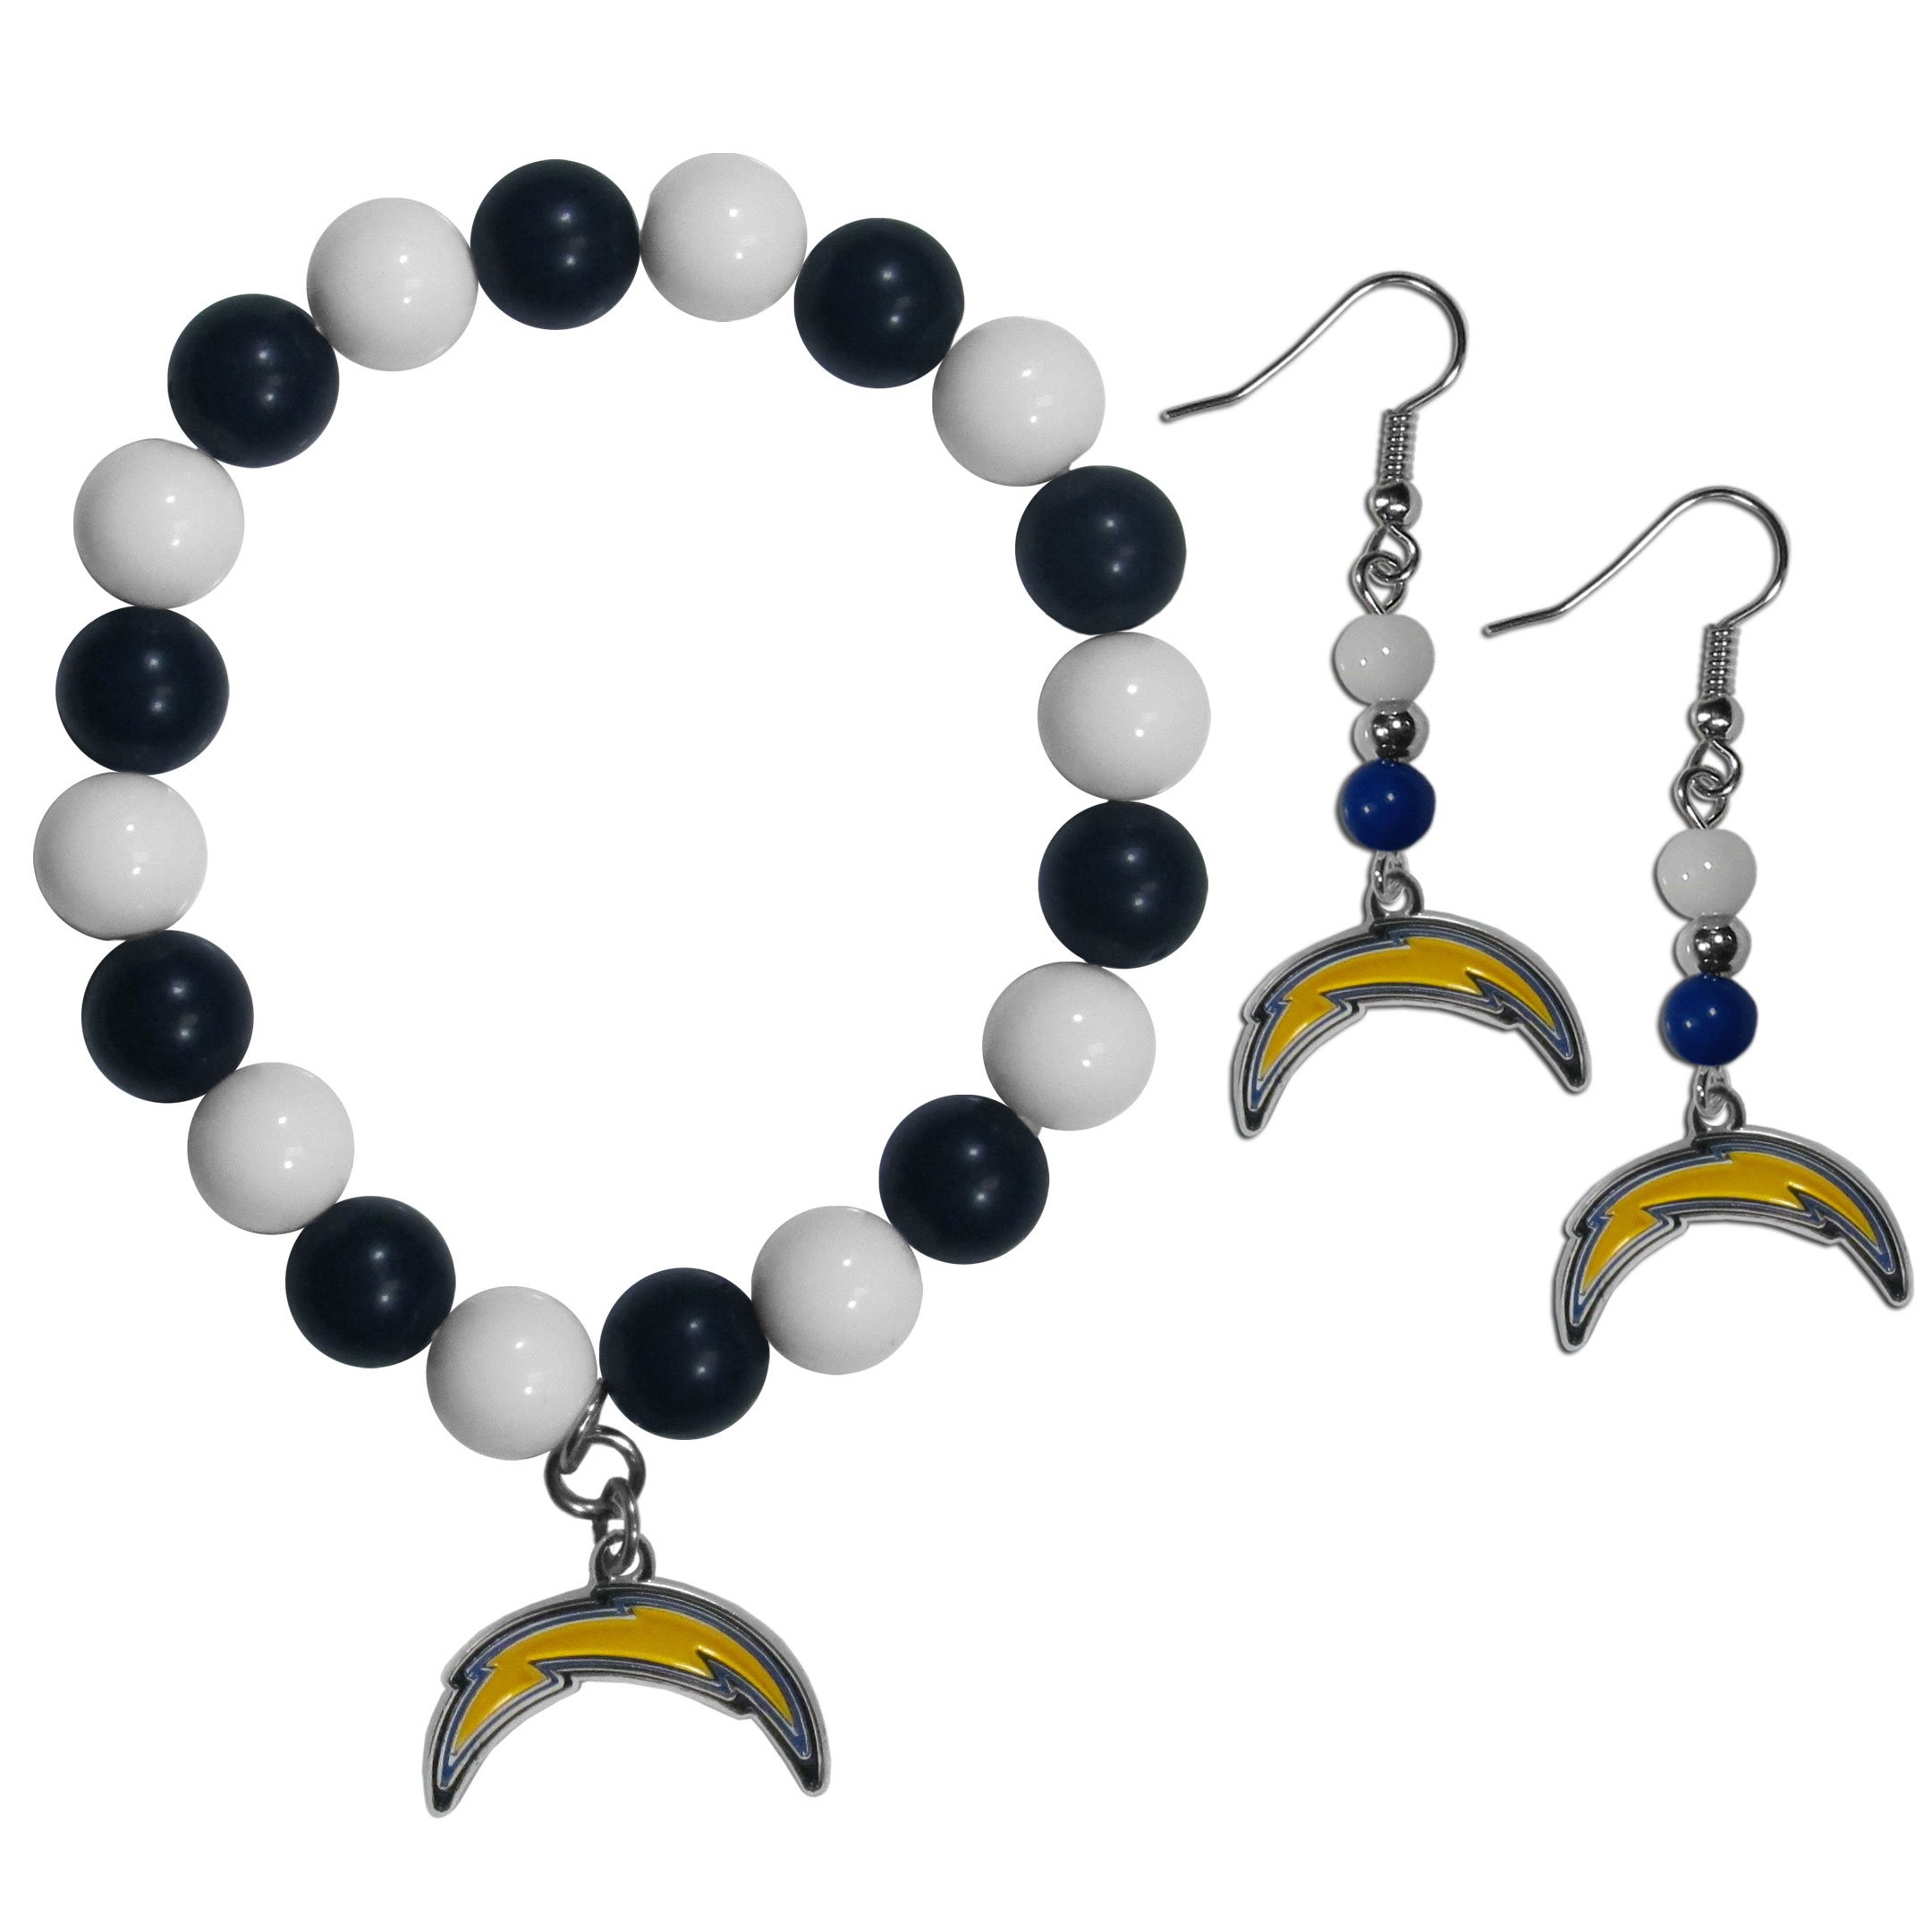 Los Angeles Chargers Fan Bead Earrings and Bracelet Set - This fun and colorful Los Angeles Chargers fan bead jewelry set is fun and casual with eye-catching beads in bright team colors. The fashionable dangle earrings feature a team colored beads that drop down to a carved and enameled charm. The stretch bracelet has larger matching beads that make a striking statement and have a matching team charm. These sassy yet sporty jewelry pieces make a perfect gift for any female fan. Spice up your game-day outfit with these fun colorful earrings and bracelet that are also cute enough for any day.